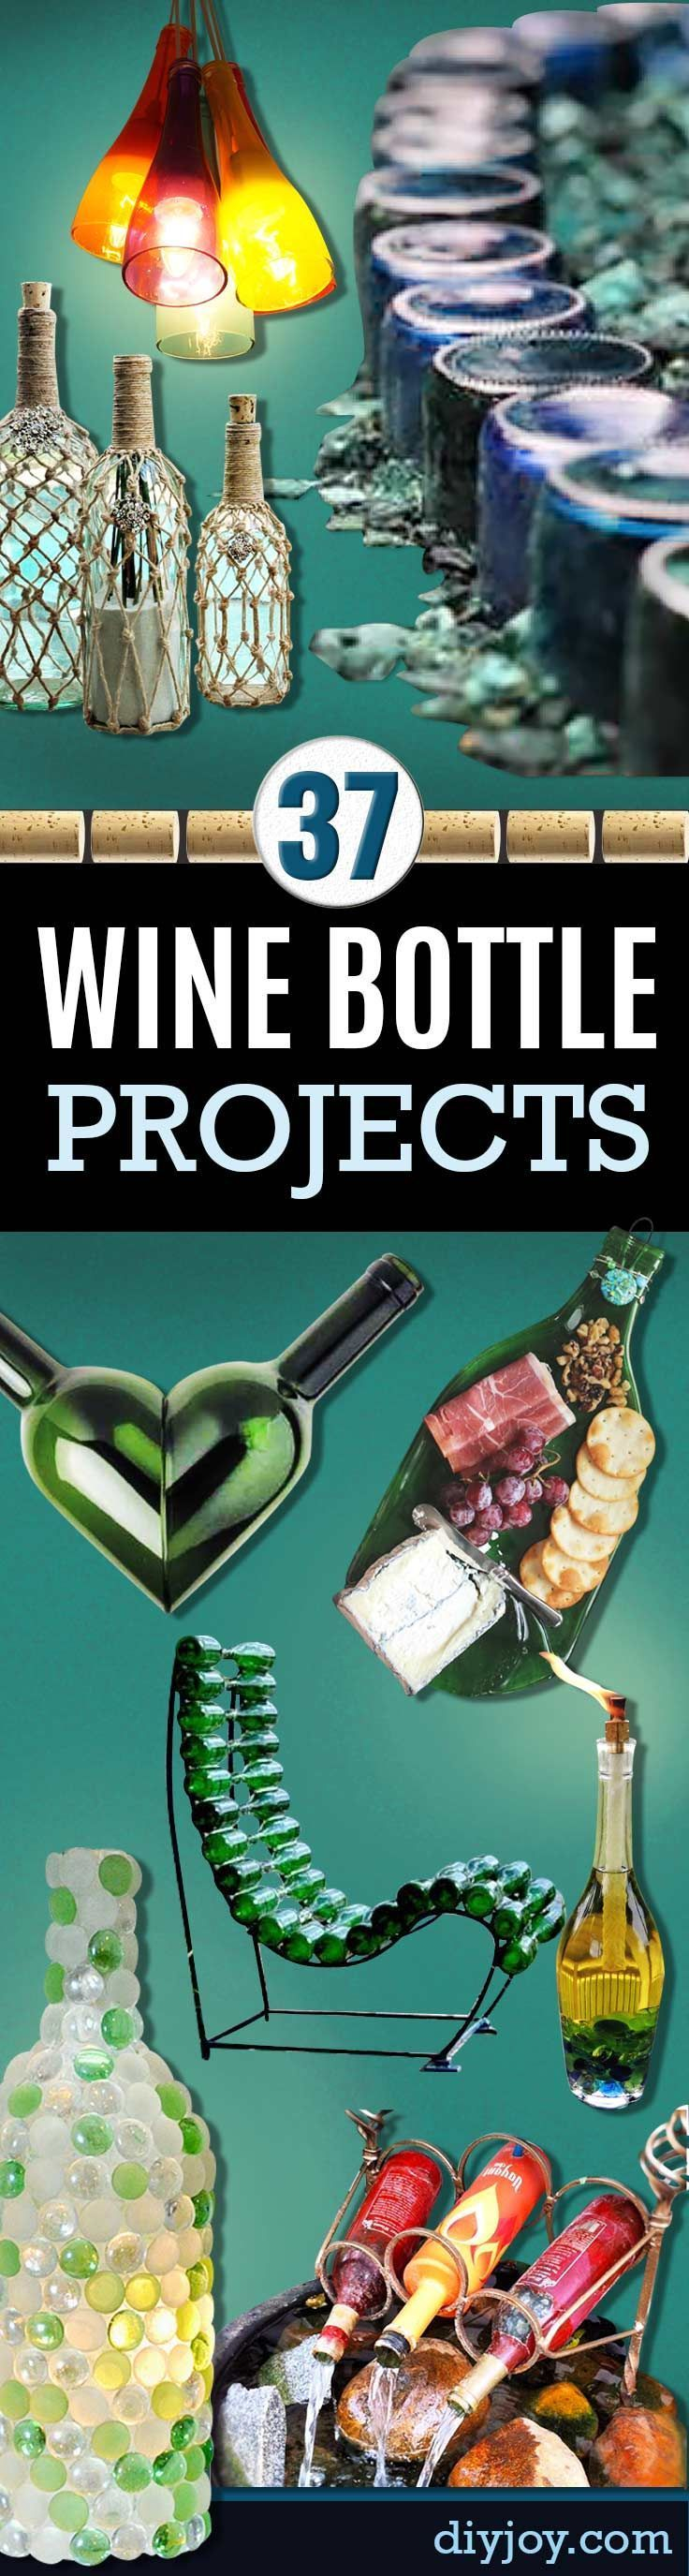 Wine Bottle DIY Crafts - Projects for Lights, Decoration, Gift Ideas, Wedding, Christmas. Easy Cut Glass Ideas for Home Decor on Pinterest diyjoy.com/...